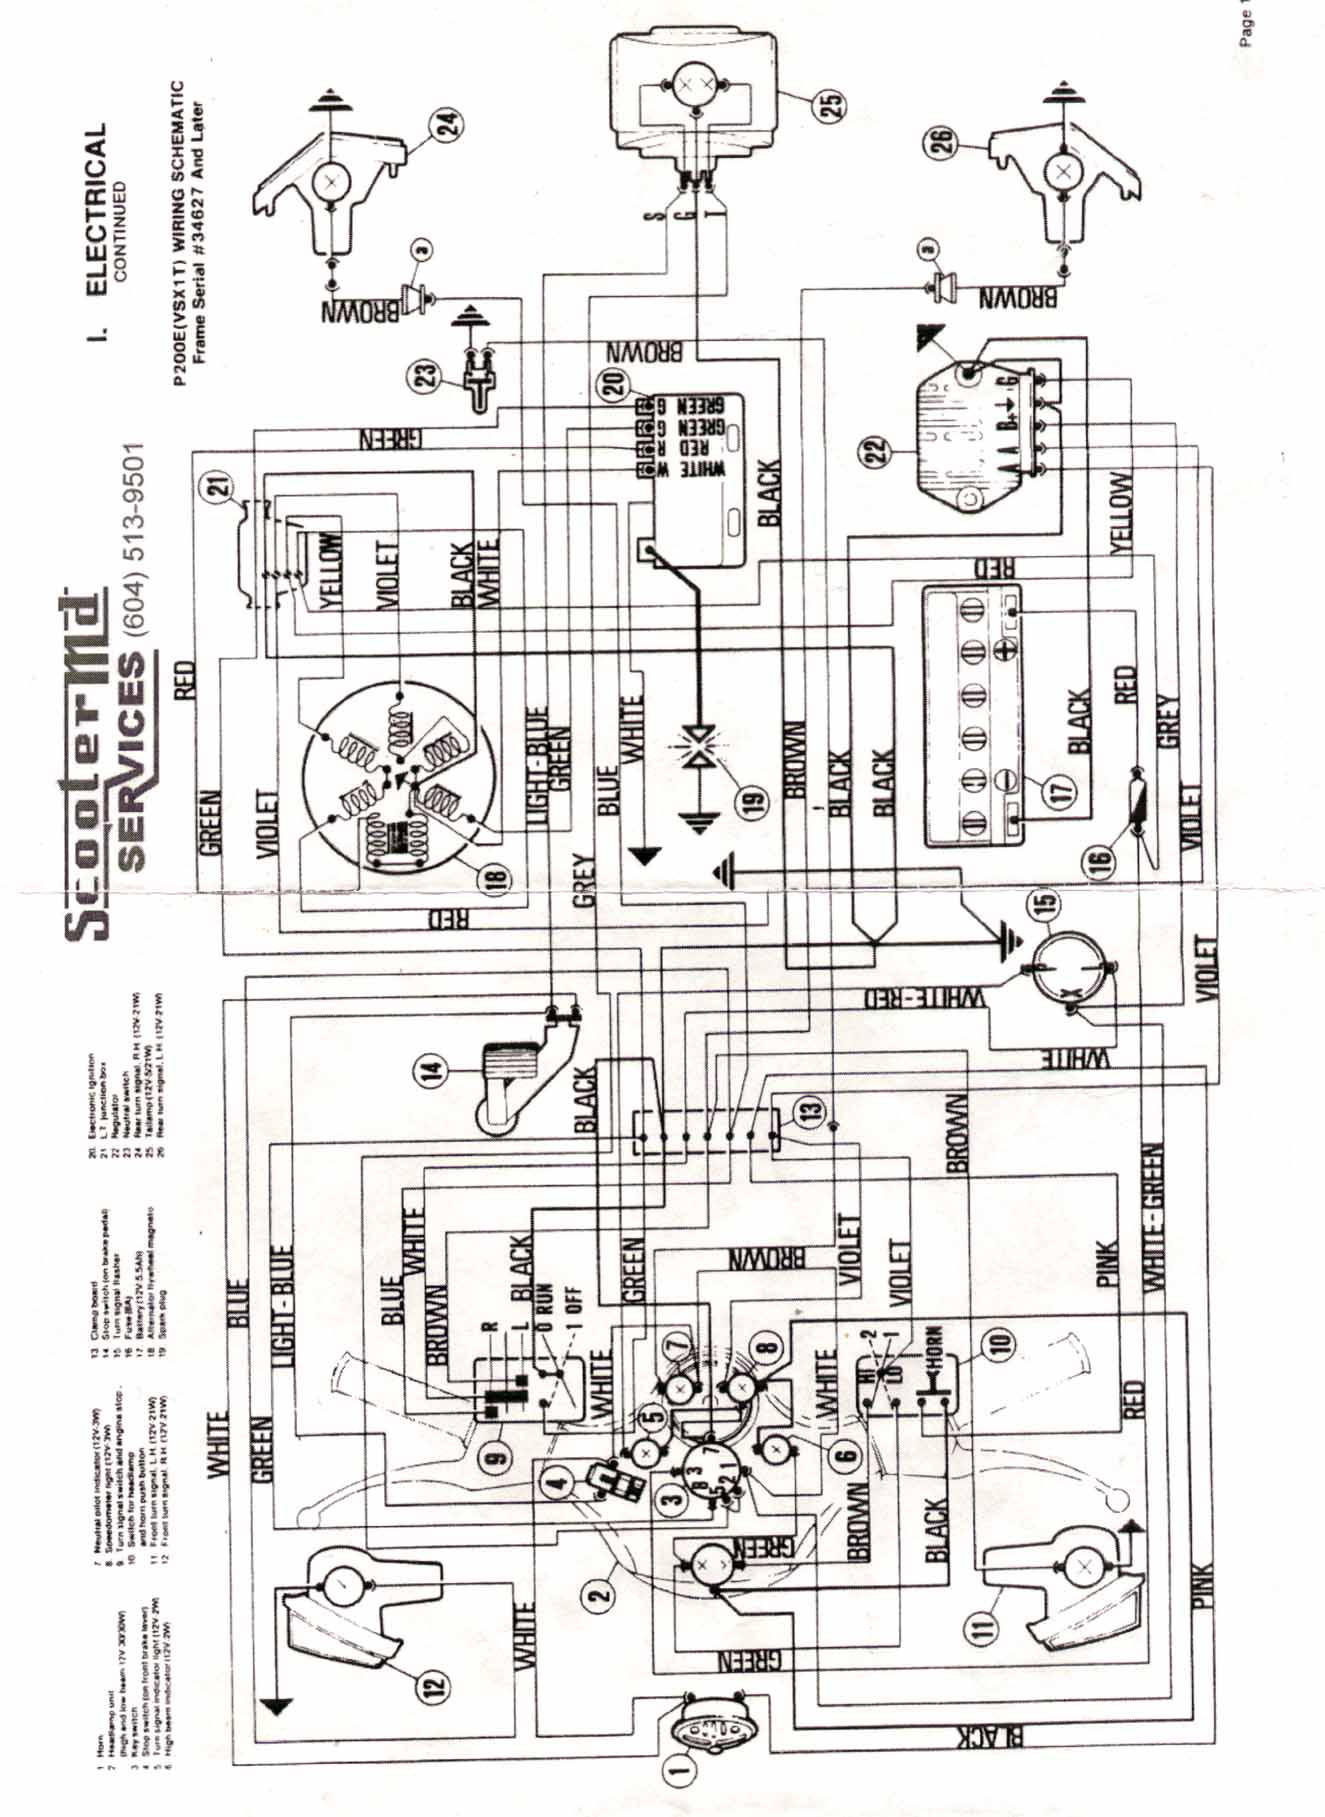 Wiring Diagram Vespa Free Vehicle Diagrams Velux P Series Maintenance Repair Rh Vespamaintenance Com Wlc 160 52 Control